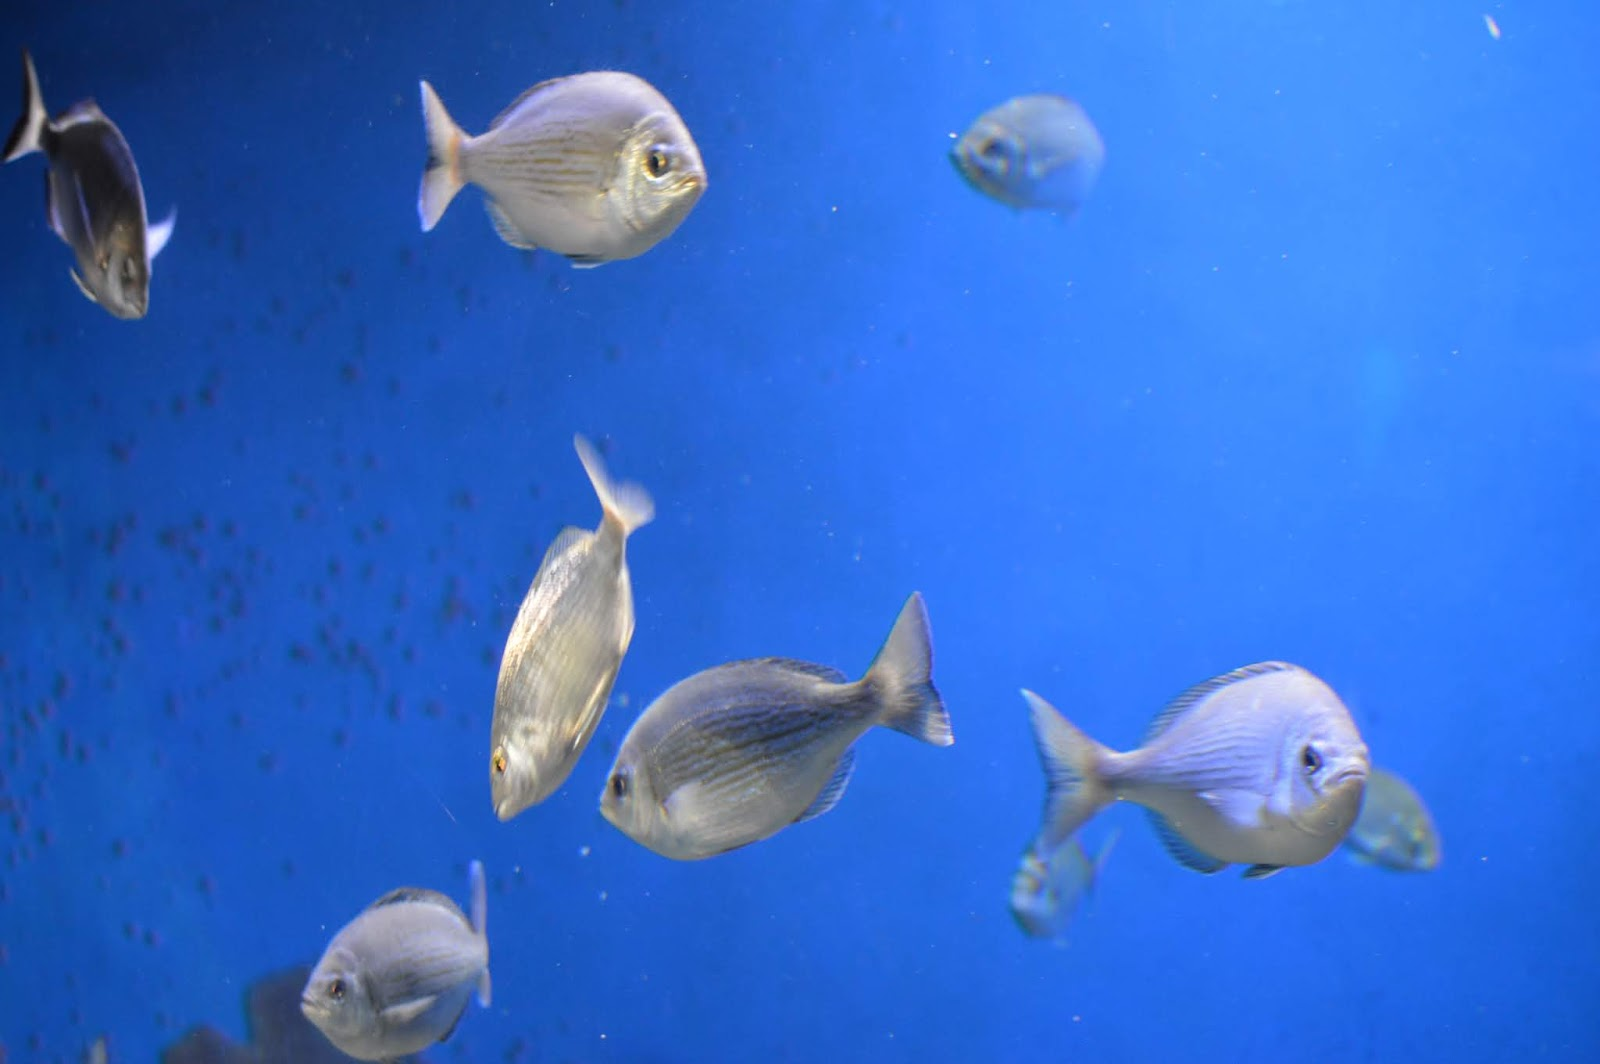 Visiting Palma Aquarium from Santa Ponsa - tropical fish tank